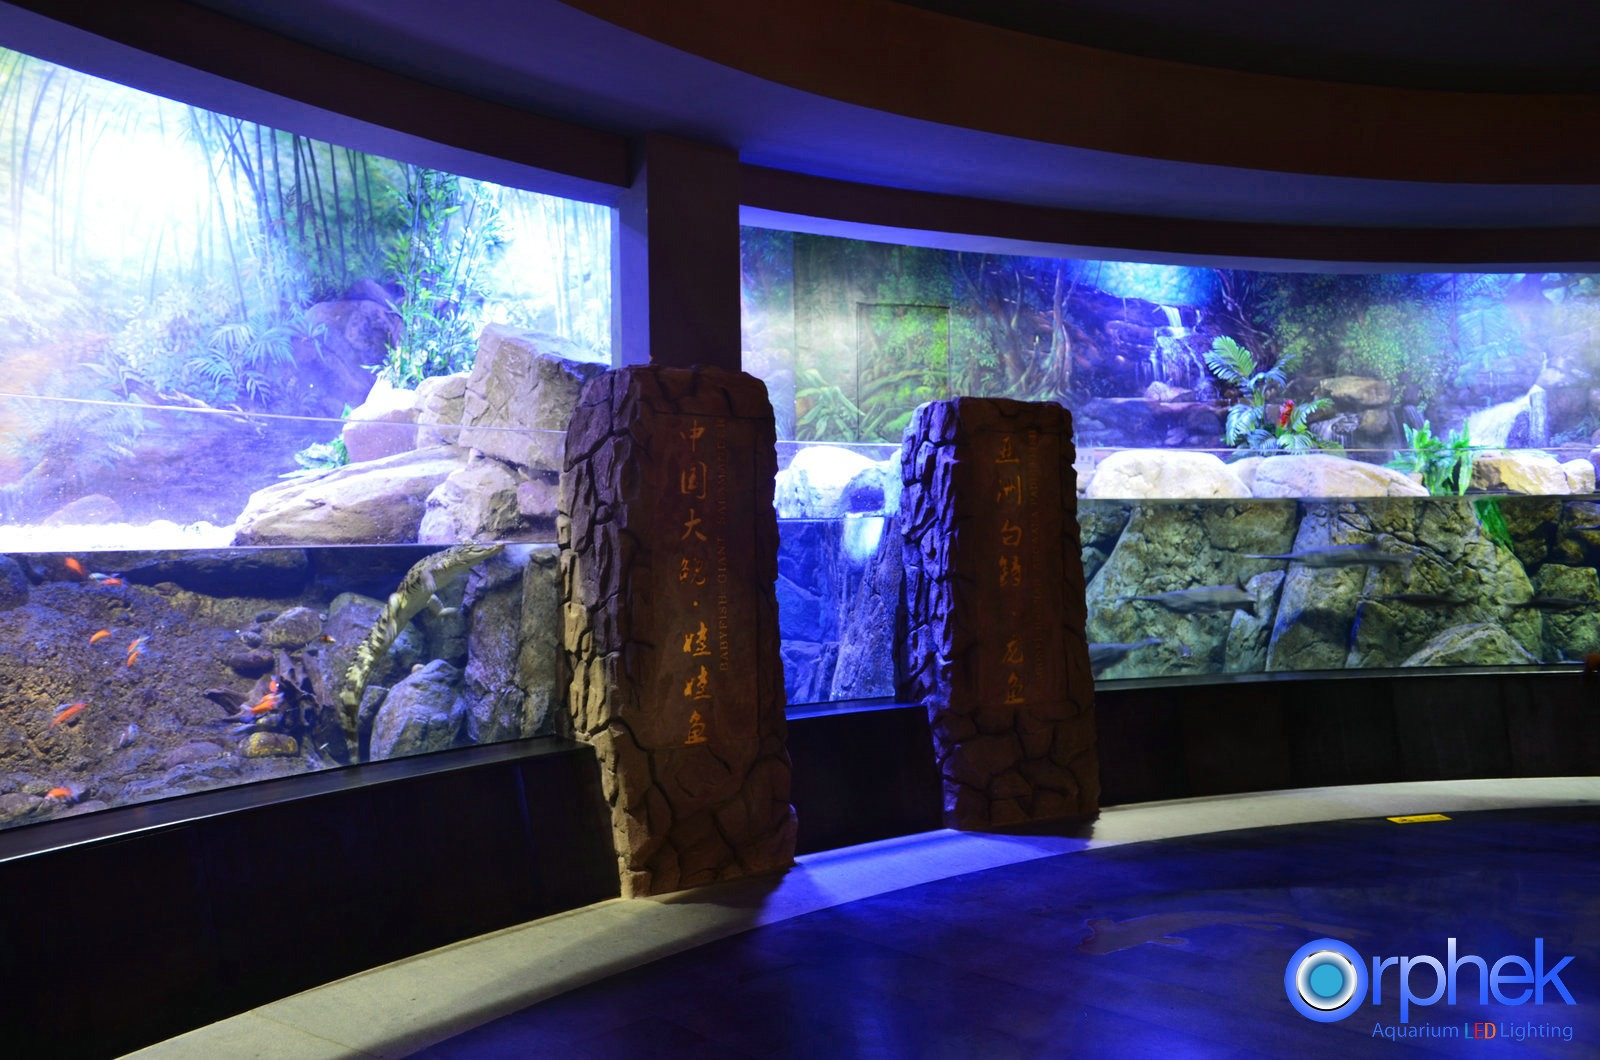 One of the Largest Public Aquarium projects in the world goes almost ...